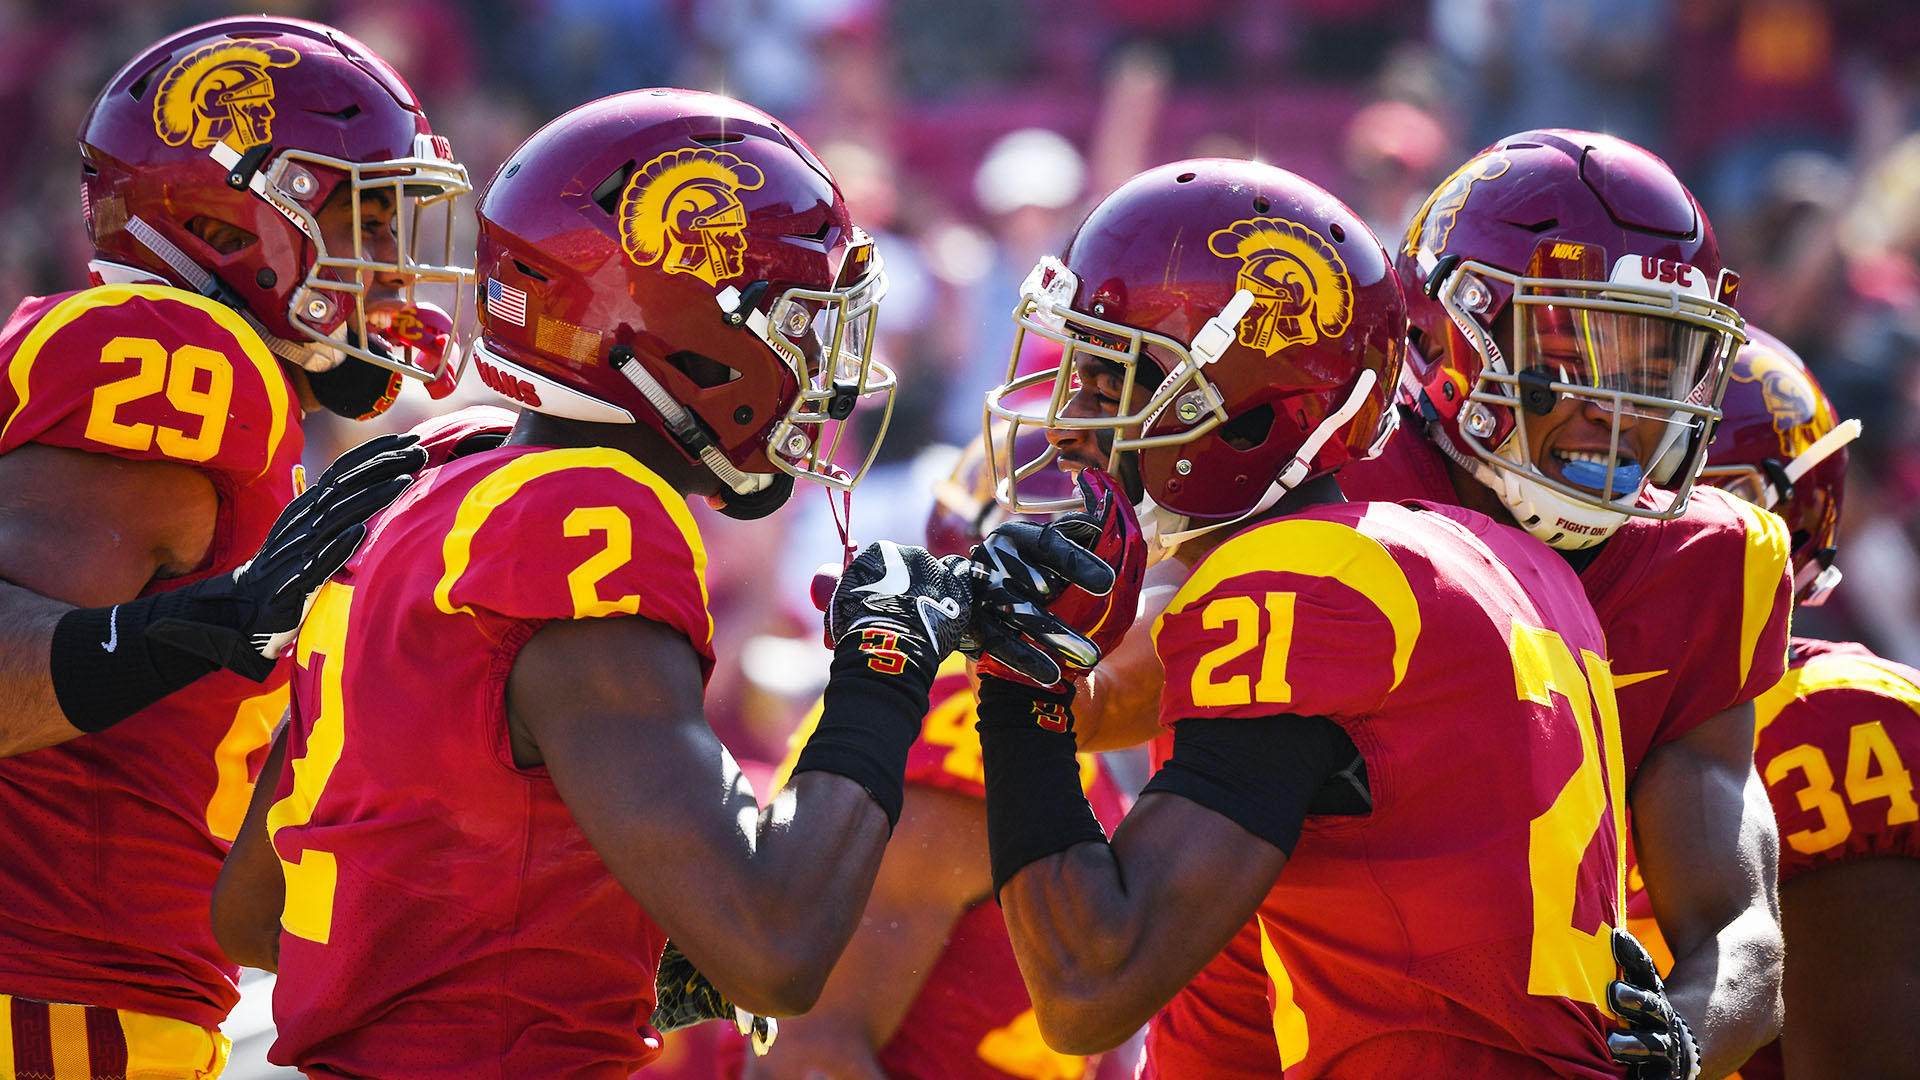 USC football preview